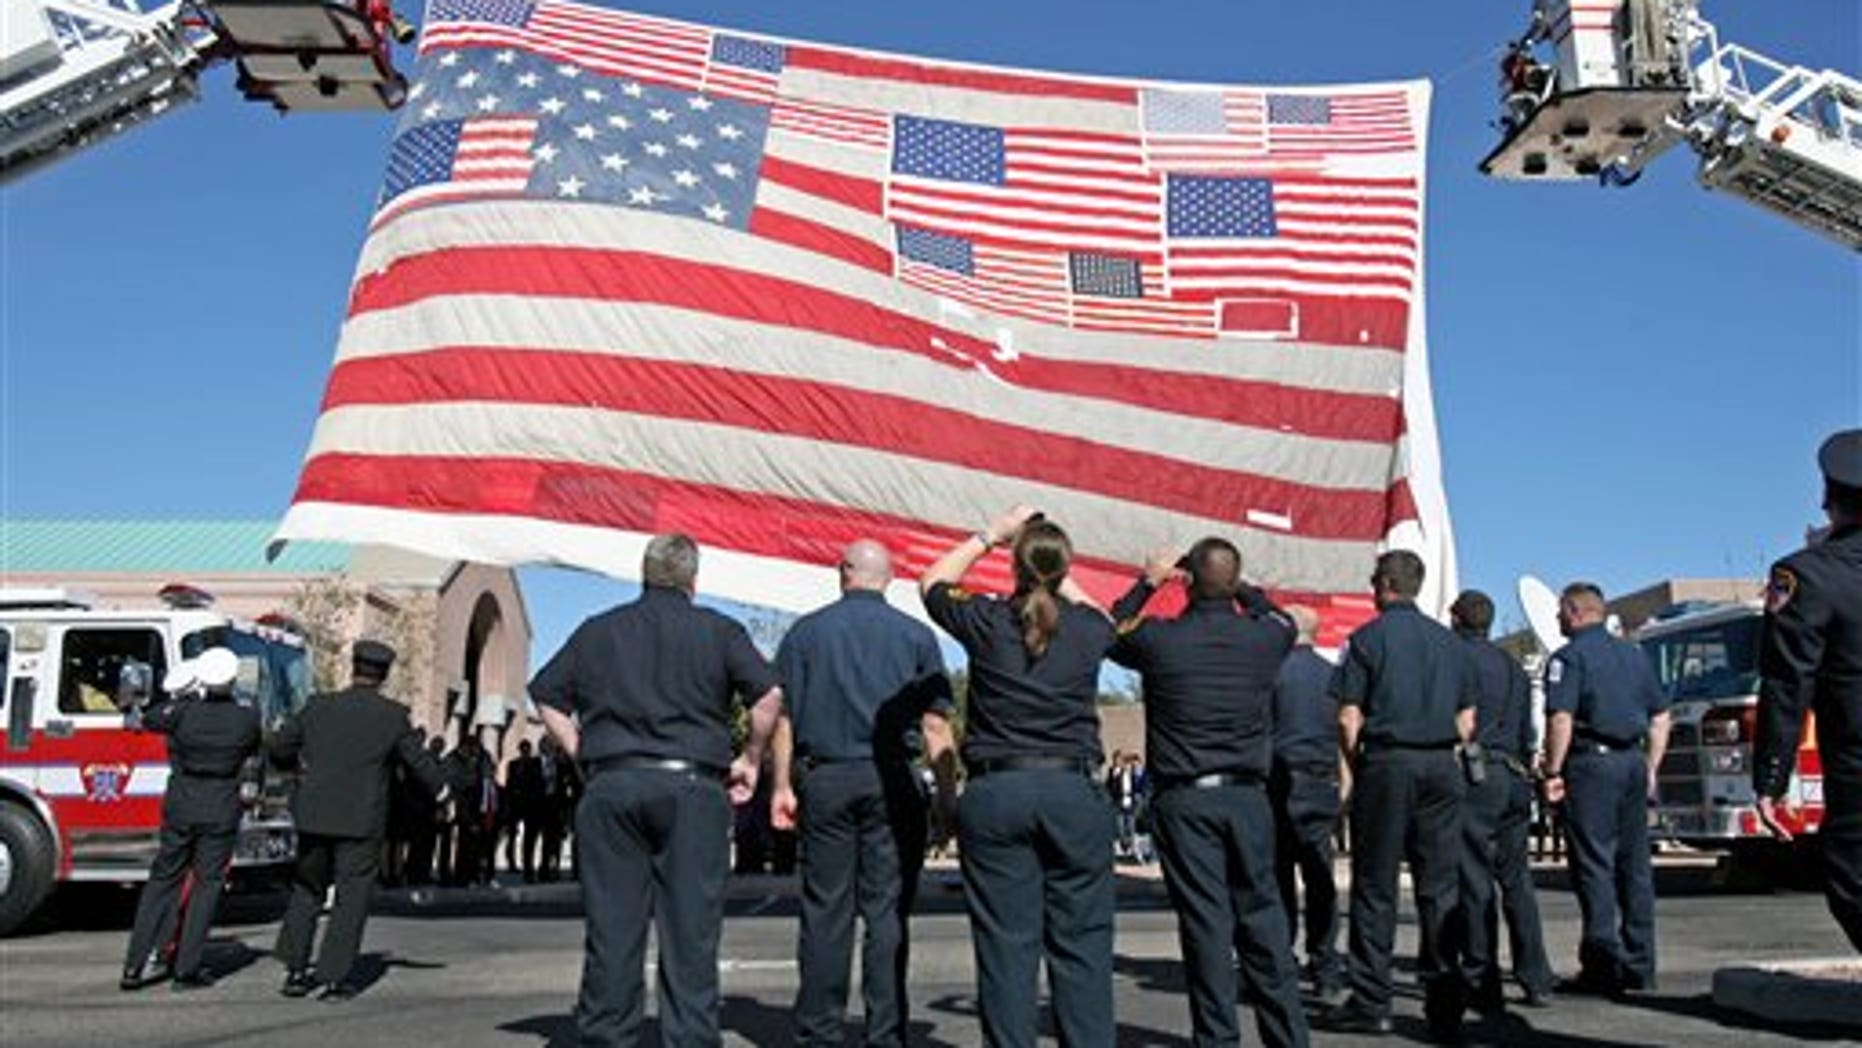 Jan. 13, 2011: Firefighters raise the large American flag recovered from Ground Zero after the 9/11 attacks outside the entrance at the St. Elizabeth Ann Seton Church for the funeral of 9-year-old Christina Taylor Green in Tucson, Ariz. Green, the youngest victim of Saturday's shooting in Tucson, was born on the day of the Sept. 11 attacks in 2001.